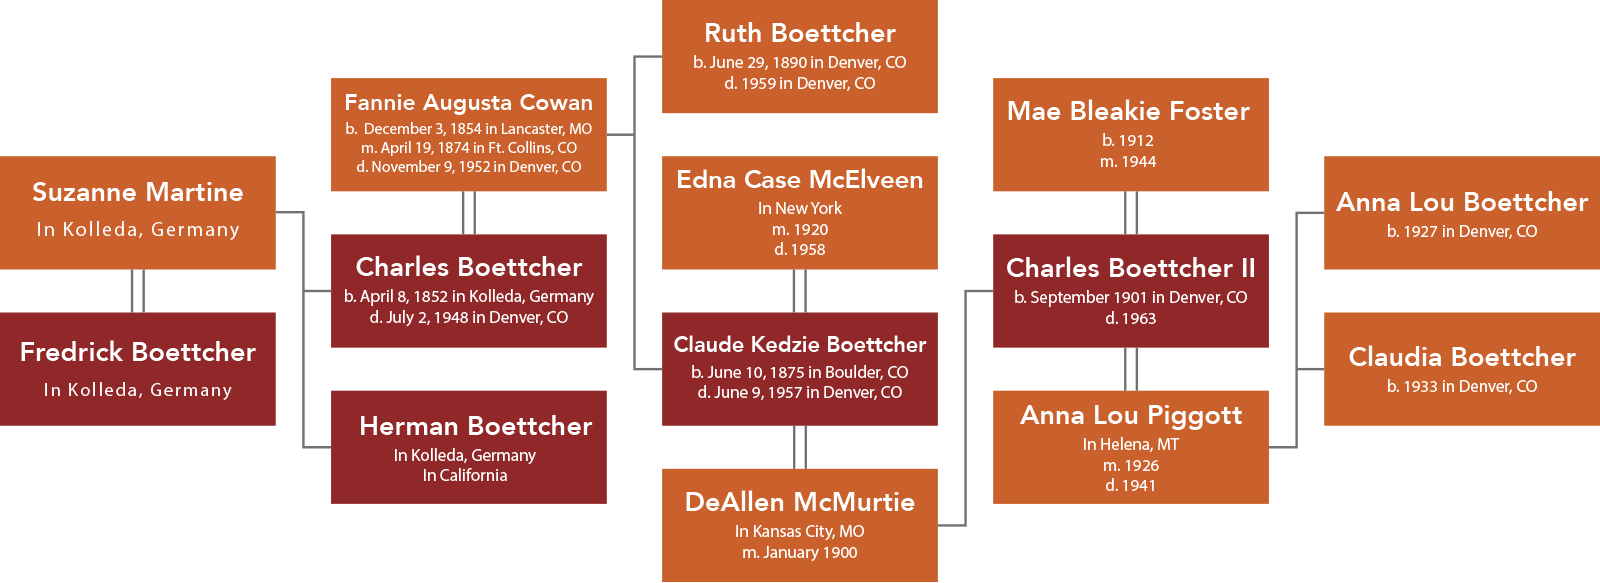 Boettcher Family Tree